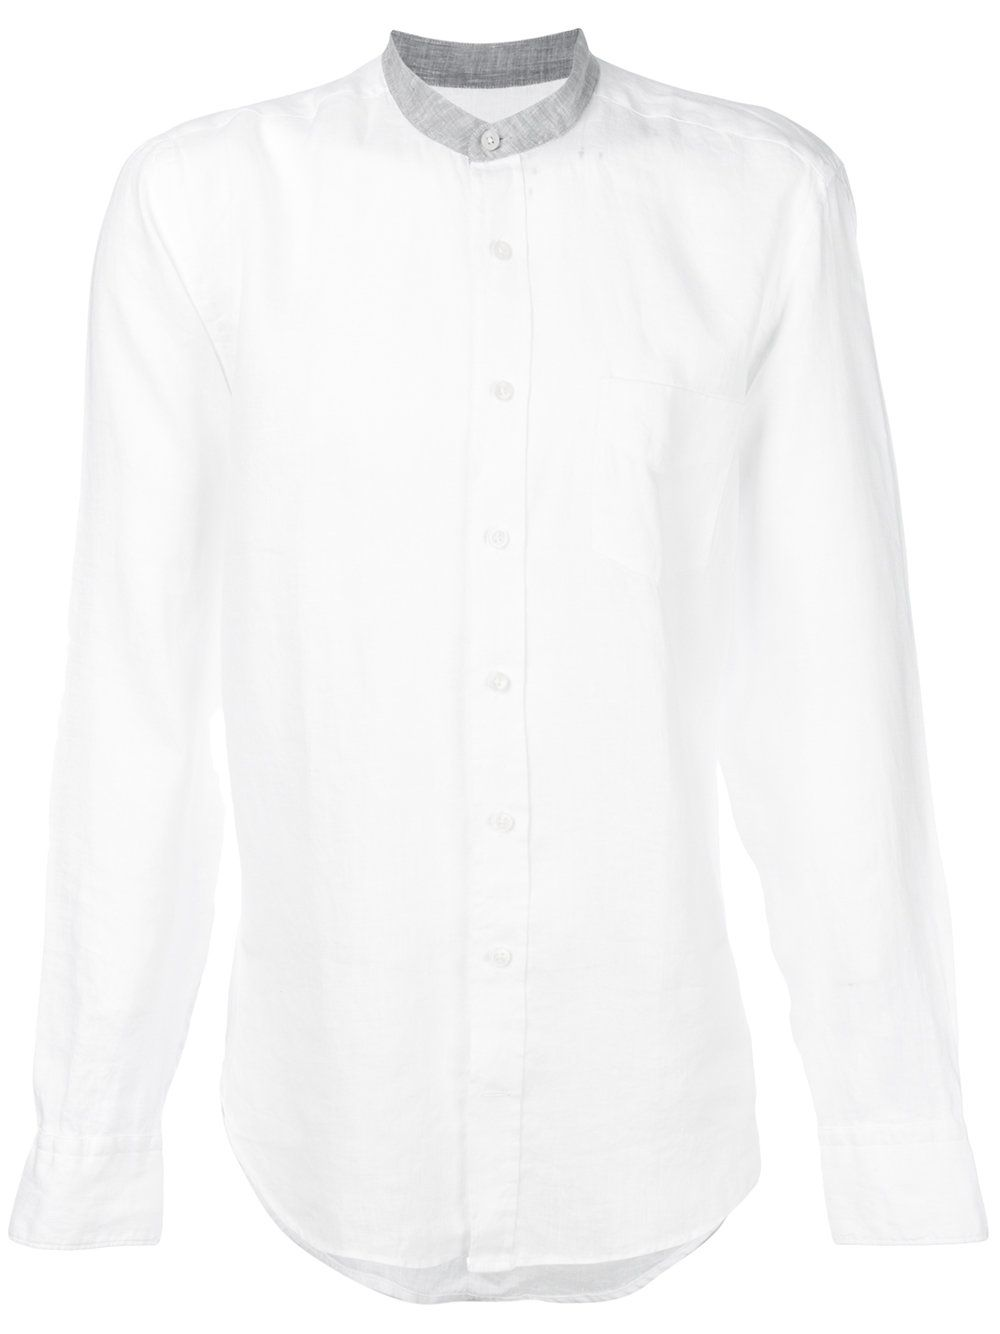 136a596910d2 Hackett Band Collar Shirt - White in 2018